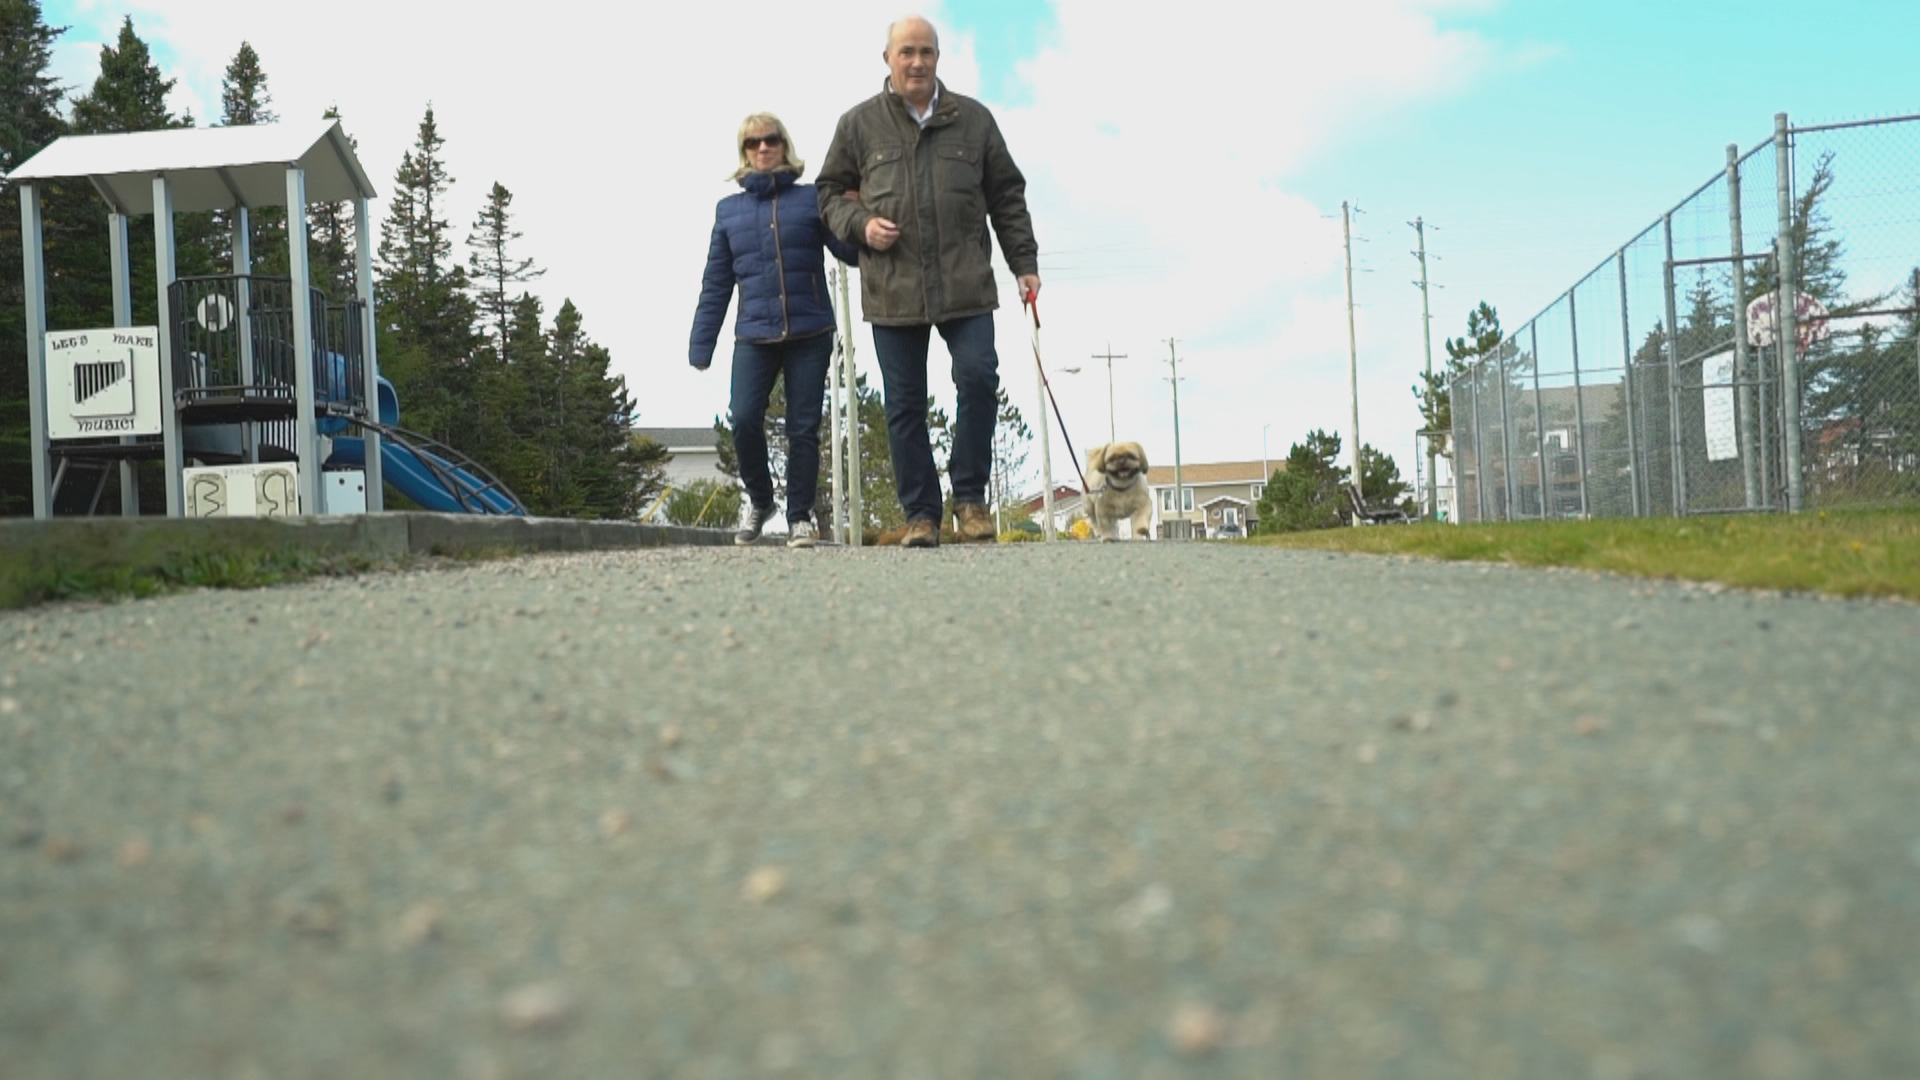 Now, Debbie Maloney enjoys going for walks with her partner Glenn Parsons and their dog Finnigan at a park near their home in Mount Pearl. (Sherry Vivian/CBC)